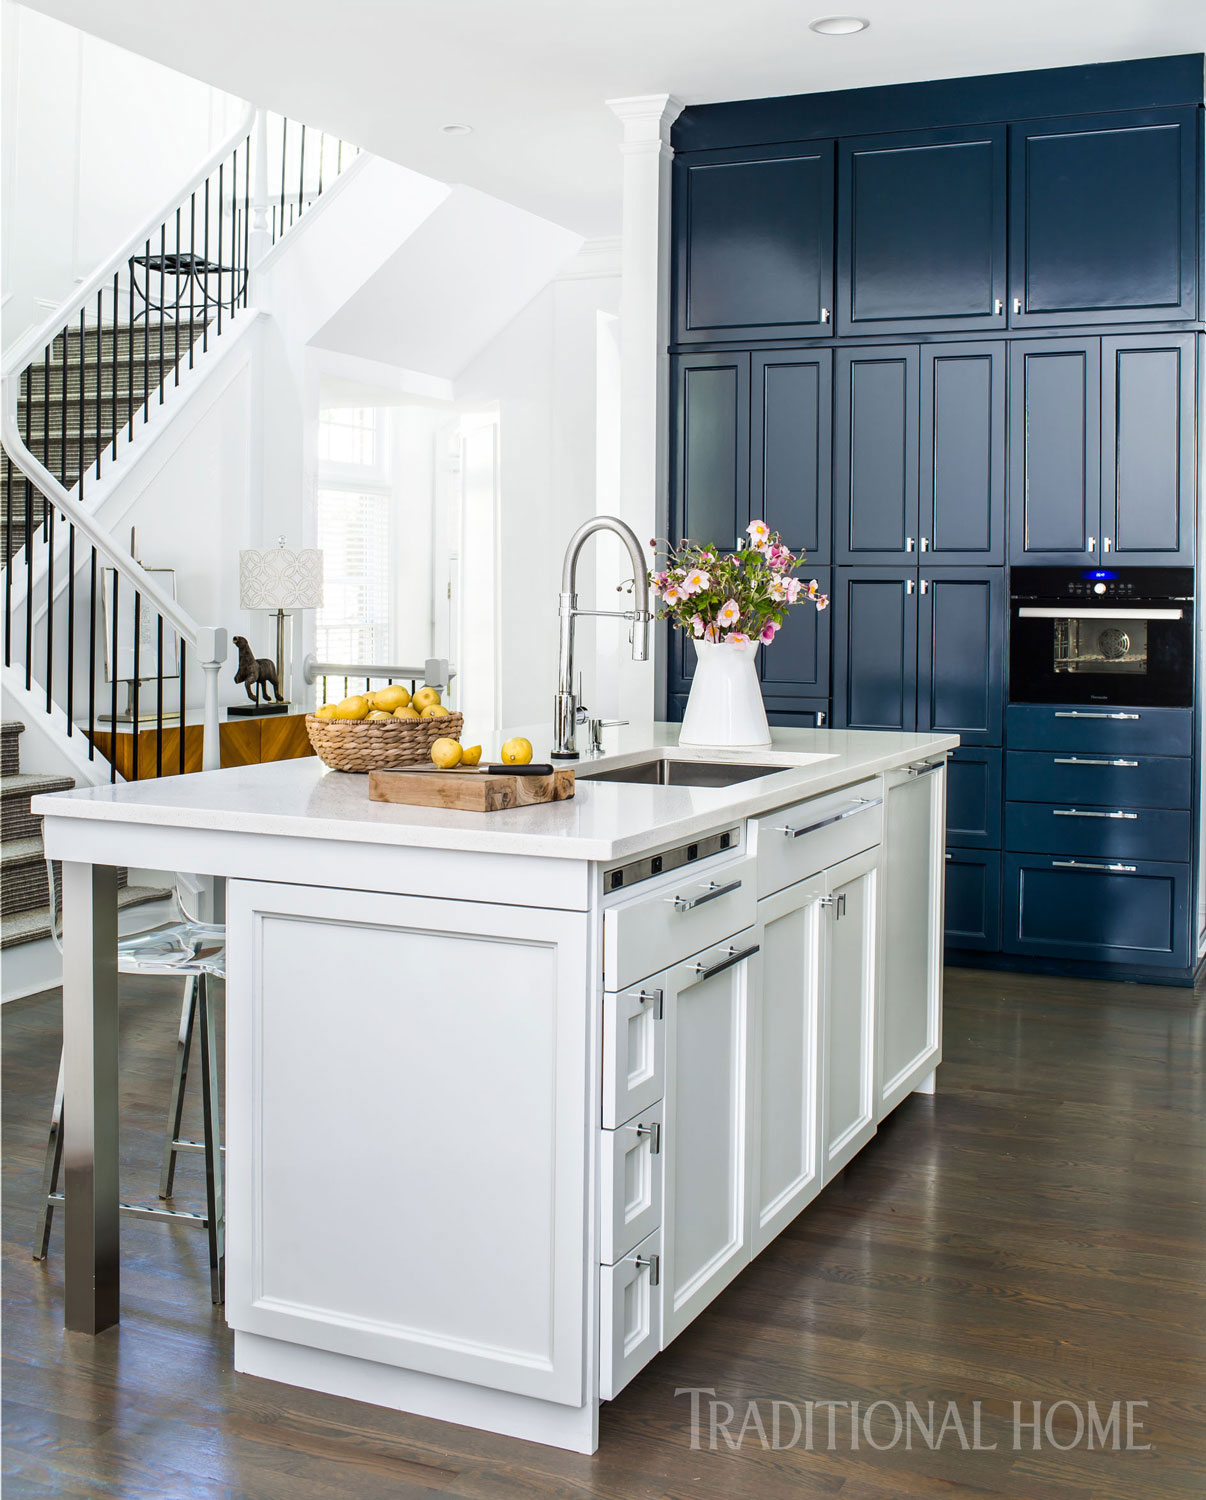 Pleasant Dramatic Color In The Kitchen Traditional Home Home Interior And Landscaping Ologienasavecom